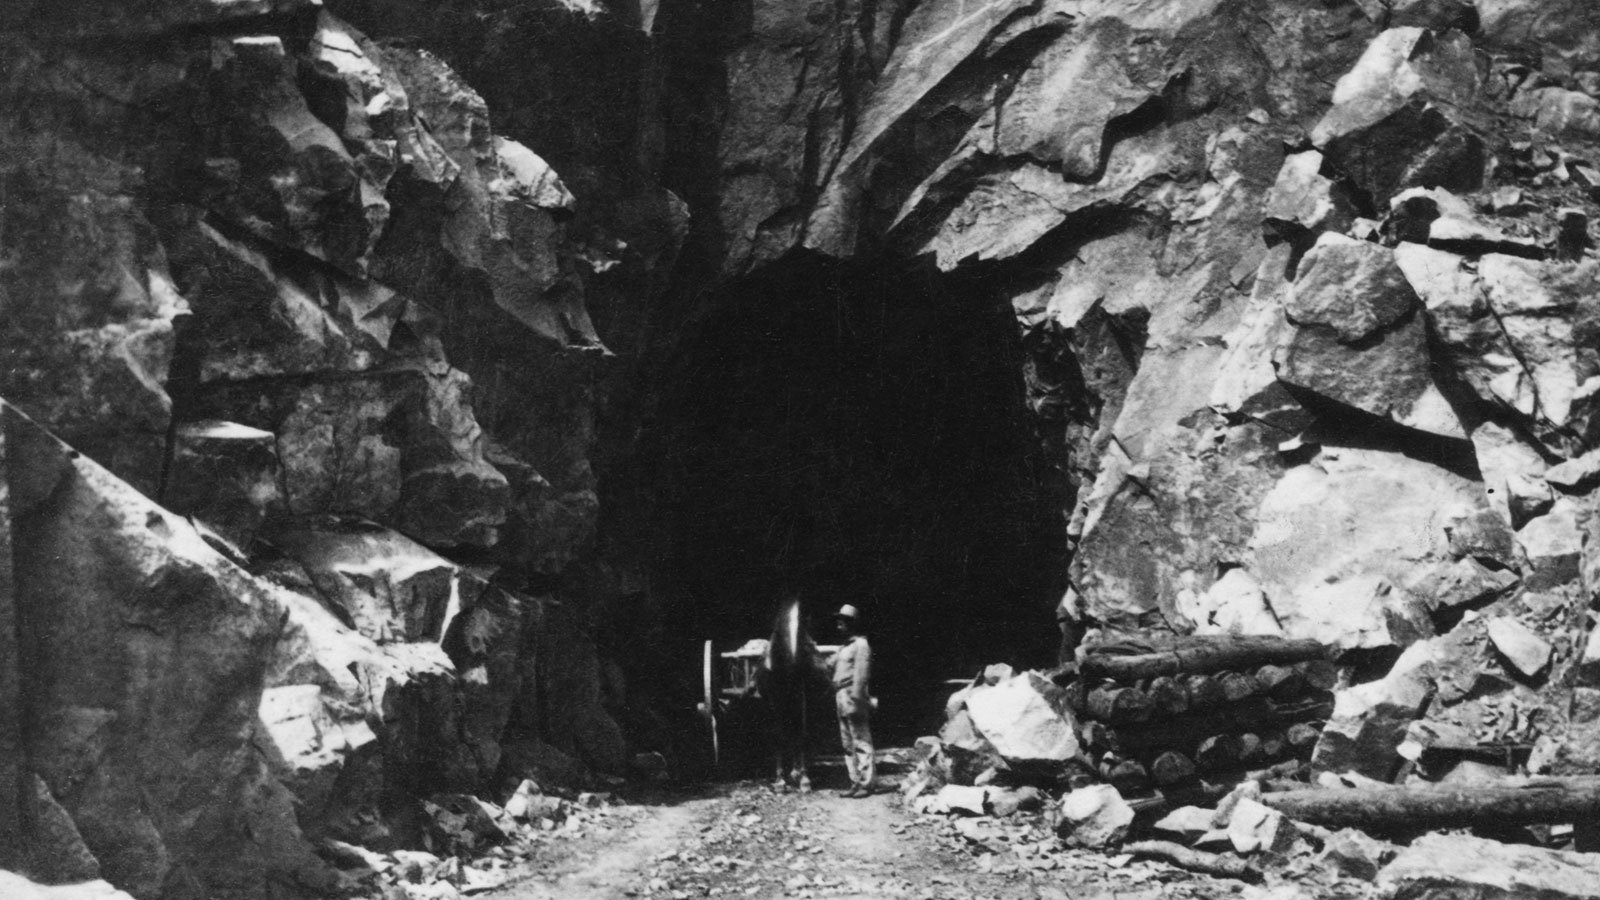 East Portal of Summit Tunnel